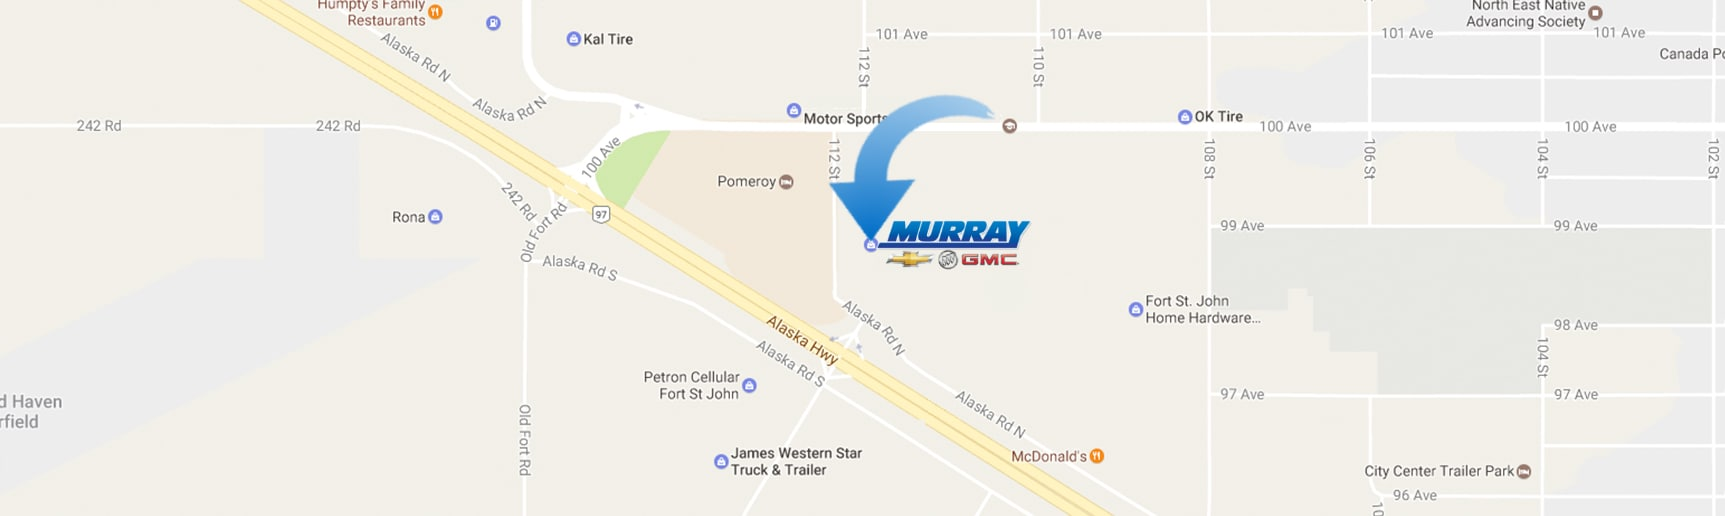 Murray GM Fort St John